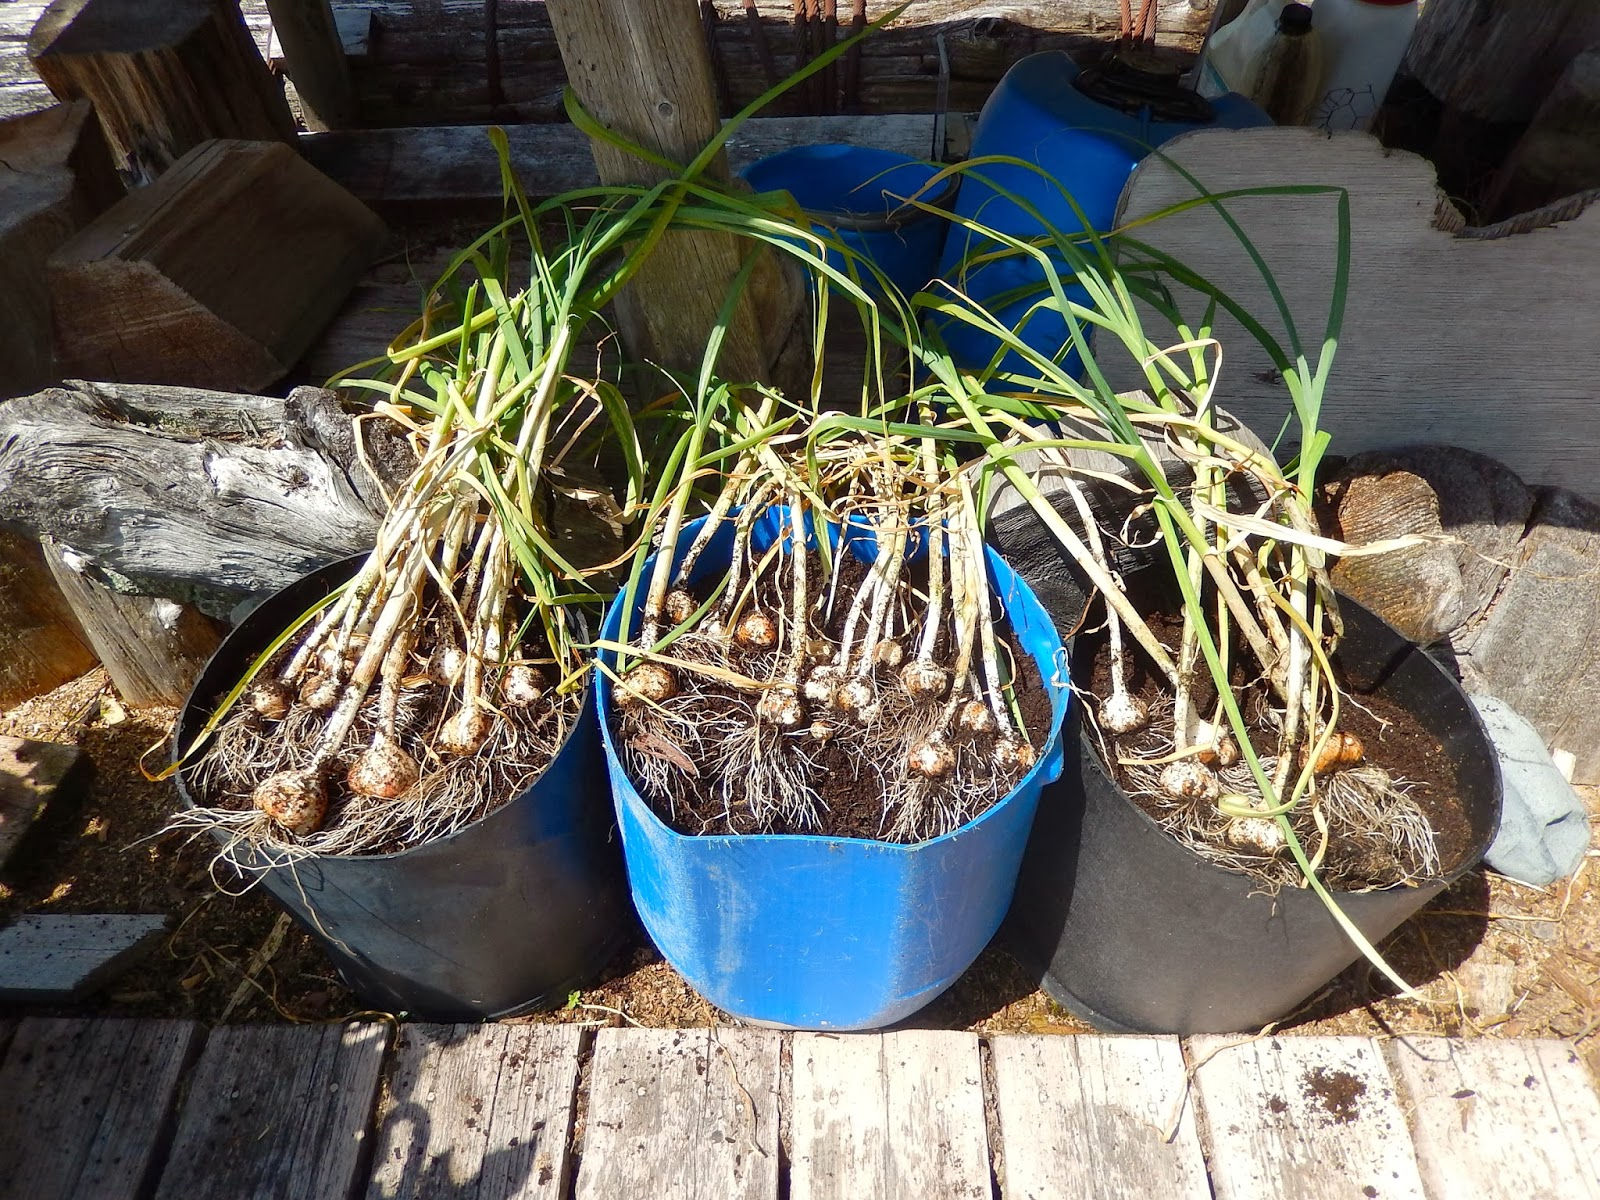 powell river books blog preserving growing garlic in containers. Black Bedroom Furniture Sets. Home Design Ideas